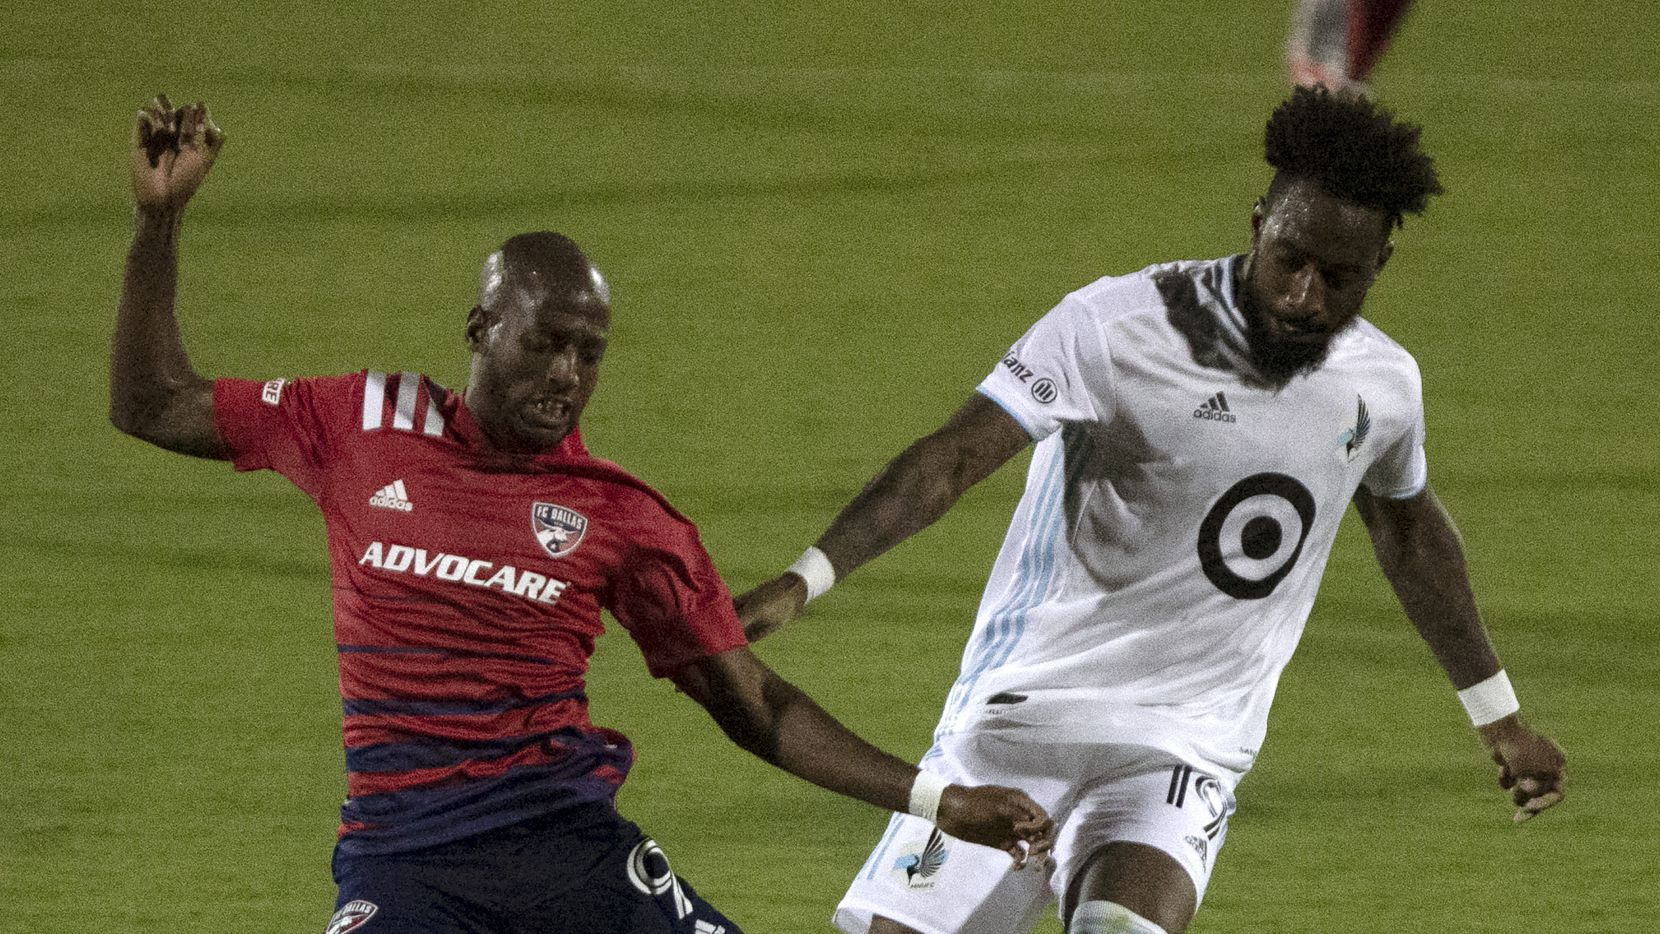 FC Dallas forward Fafa Picault (9) falls after contact from Minnesota United defender Romain Metanire (19) during the second half as FC Dallas hosted Minnesota United at Toyota Stadium in Frisco on Saturday, August 29, 2020.